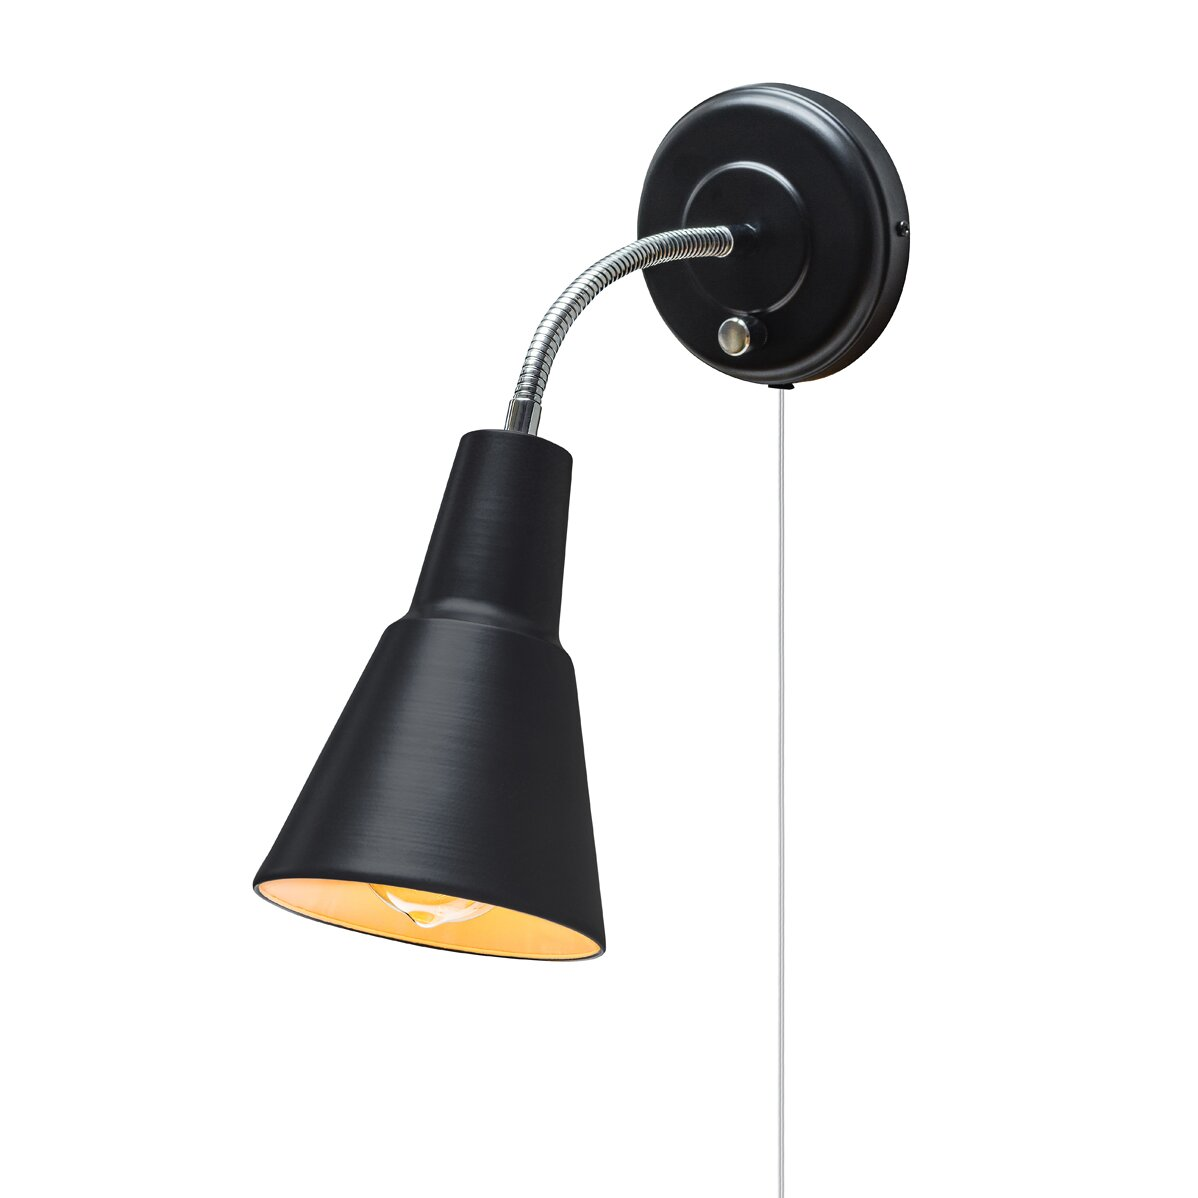 Wall Light Electric Kit : Globe Electric Company Adison 1 Light Plug In Task Wall Sconce with Hardwire Conversion Kit ...